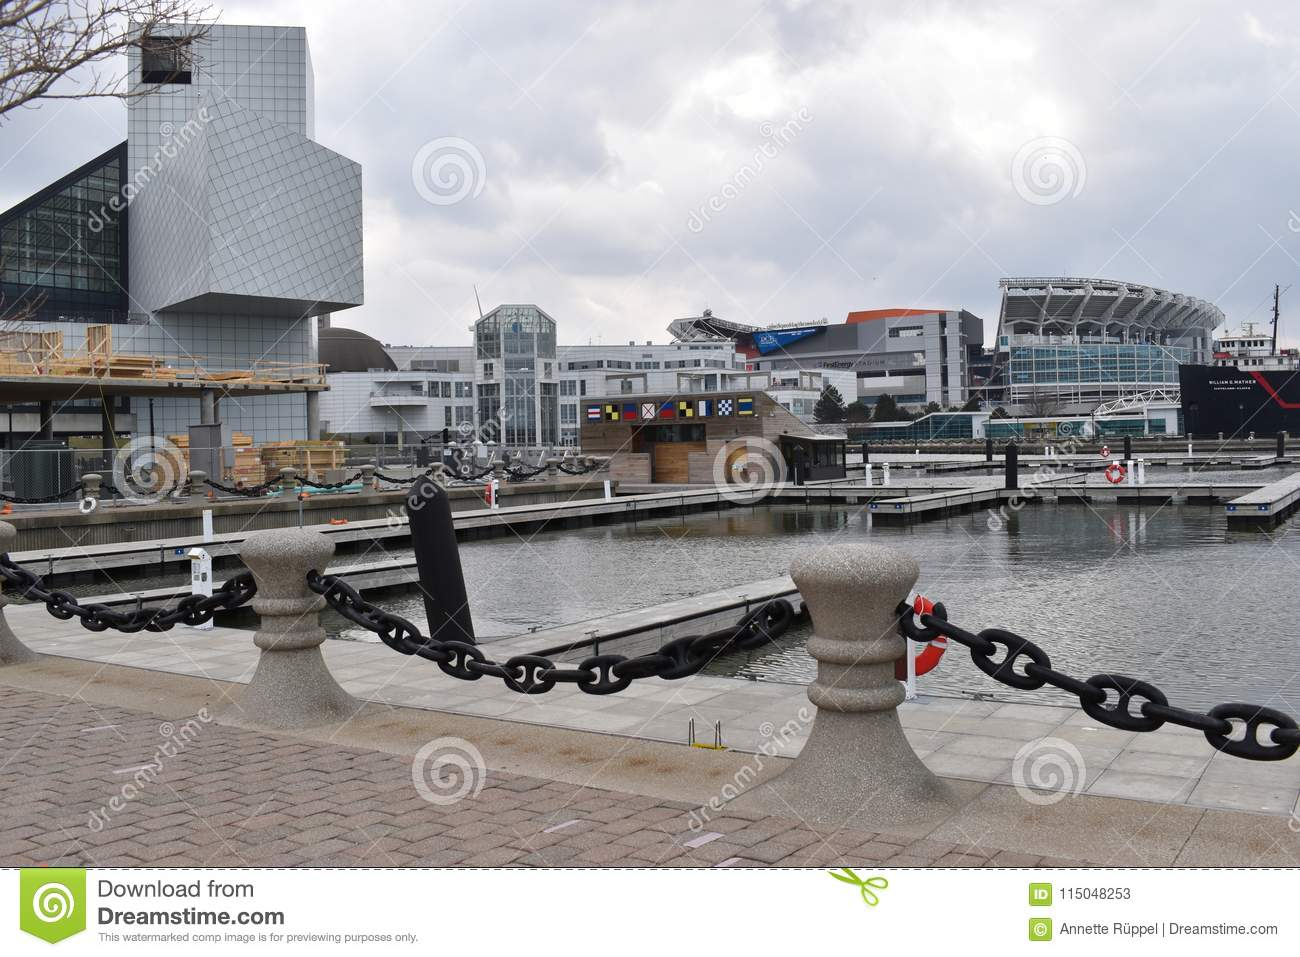 Harbor Of Cleveland In Ohio, USA Editorial Stock Photo - Image of